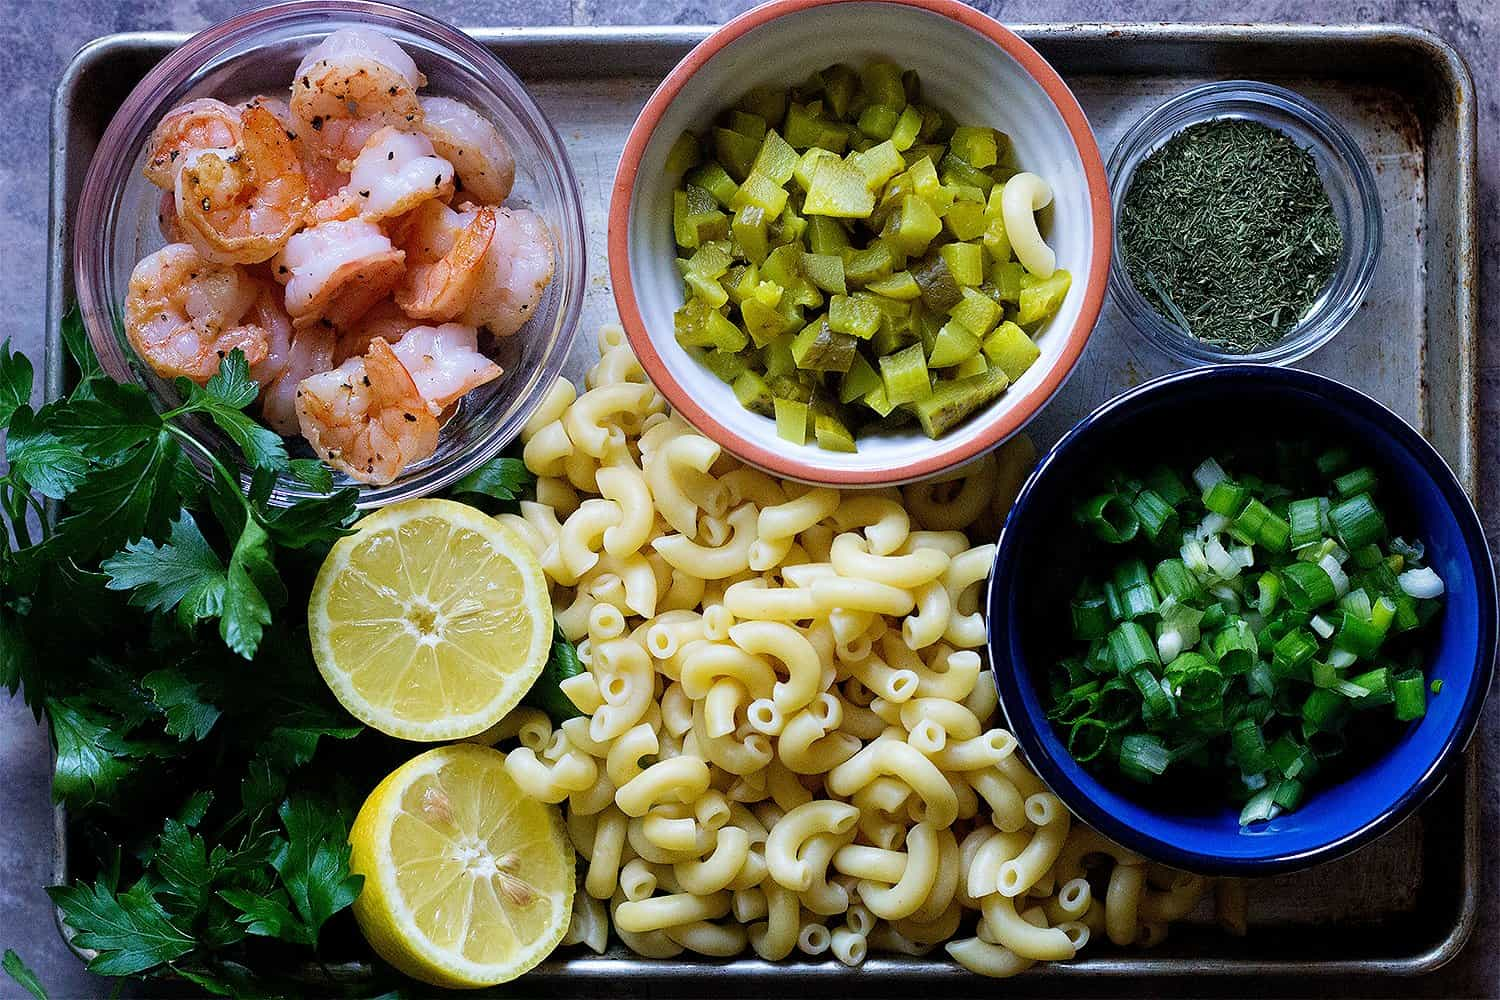 shrimp macaroni salad ingredients are cooked shrimp, pasta, parsley, dill, dill pickles, green onion, and lemon.